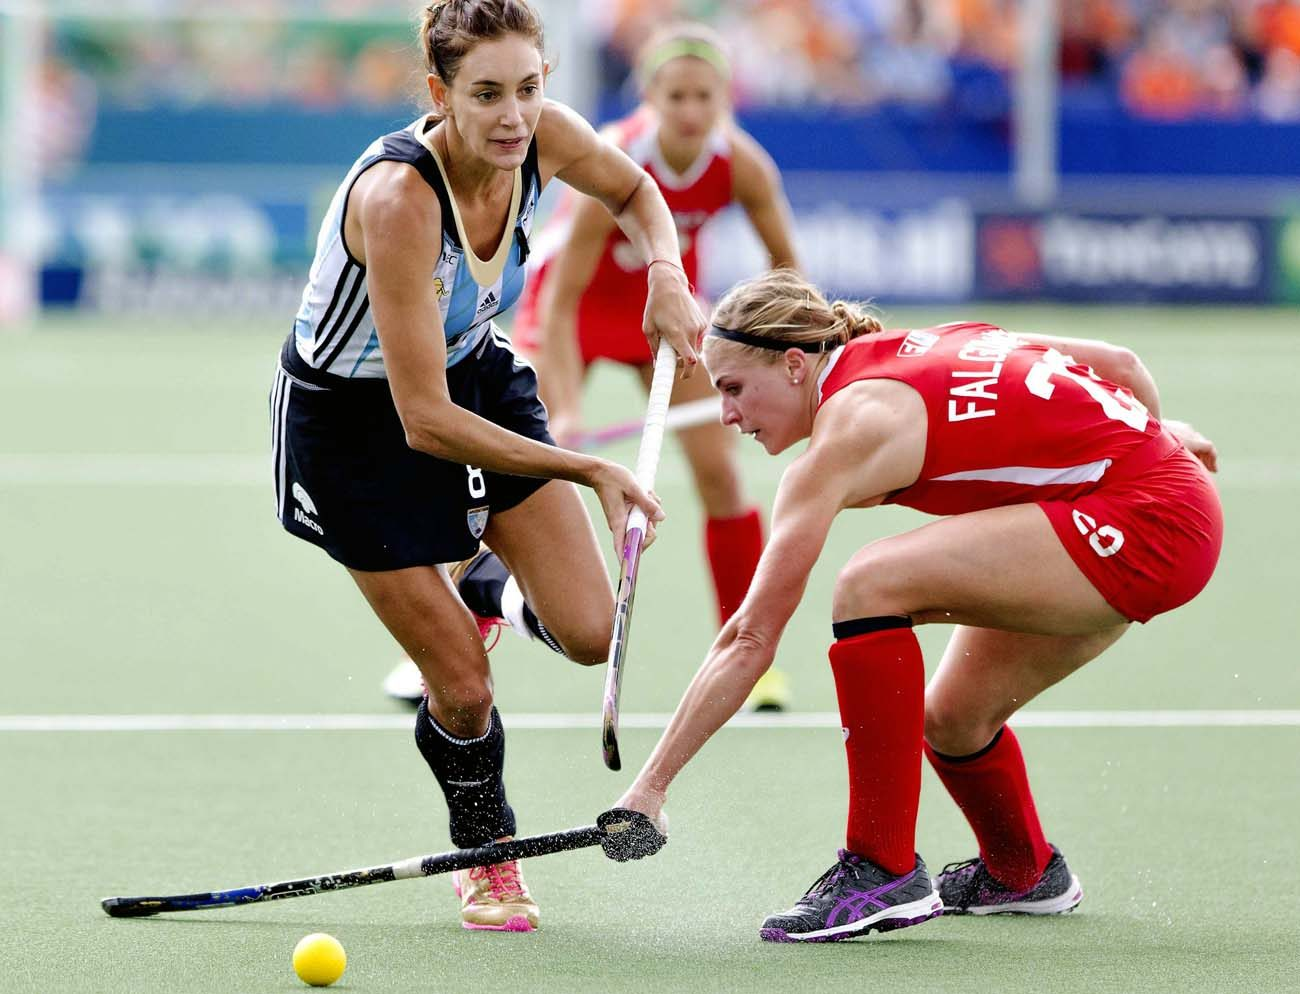 Katelyn Falgowski, right, is seen during the 2014 Field Hockey World Cup in The Hague, Netherlands. The 27-year-old graduated from St. Mark's High School in Wilmington, Del., and is going to Rio de Janeiro as part of the U.S.  women's field hockey team. (CNS photo/Sander Koning, EPA)